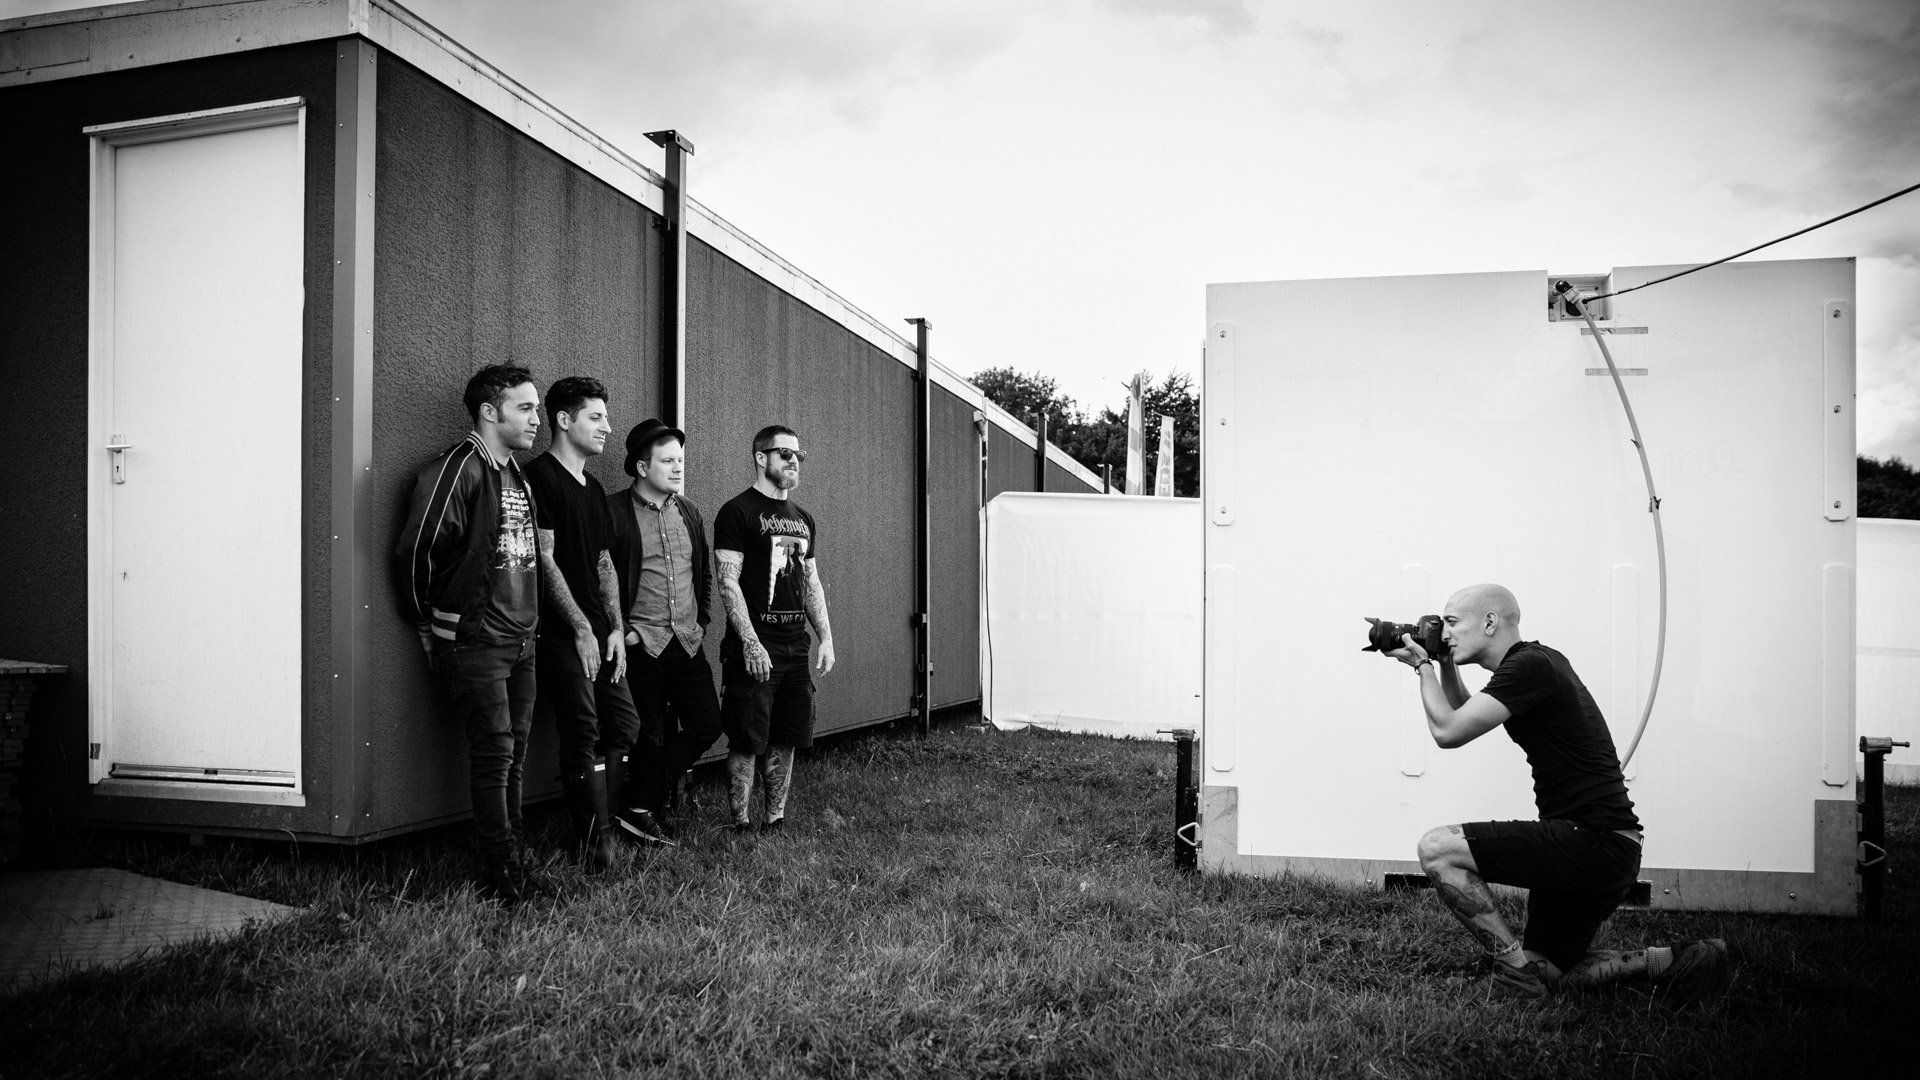 Photographing Fall Out Boy - photo by Marcus Maschwitz